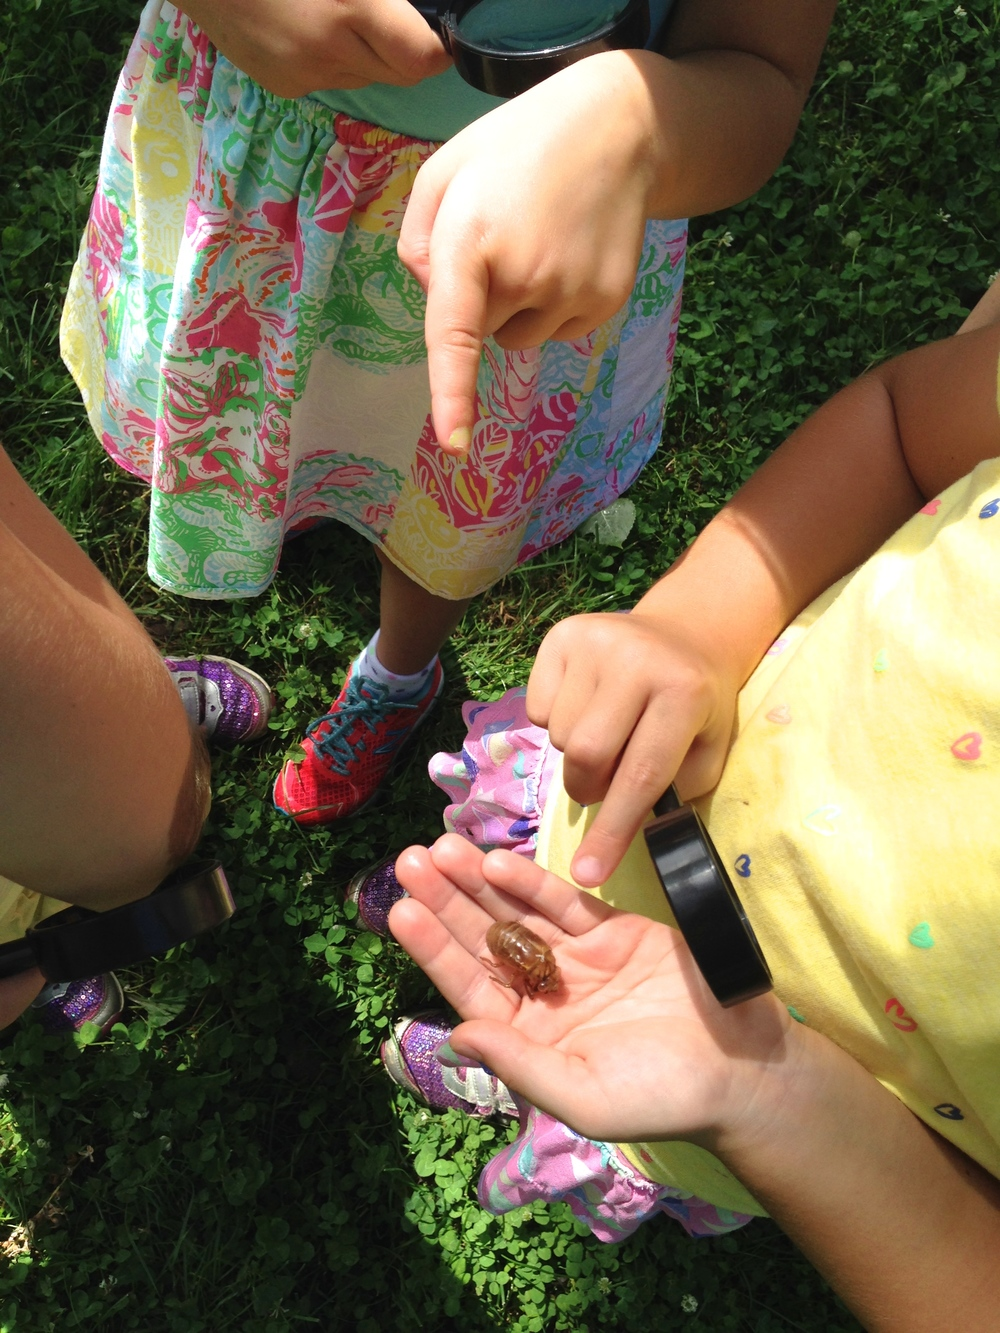 Summer campers explore a cicada exoskeleton they found on their nature walk.